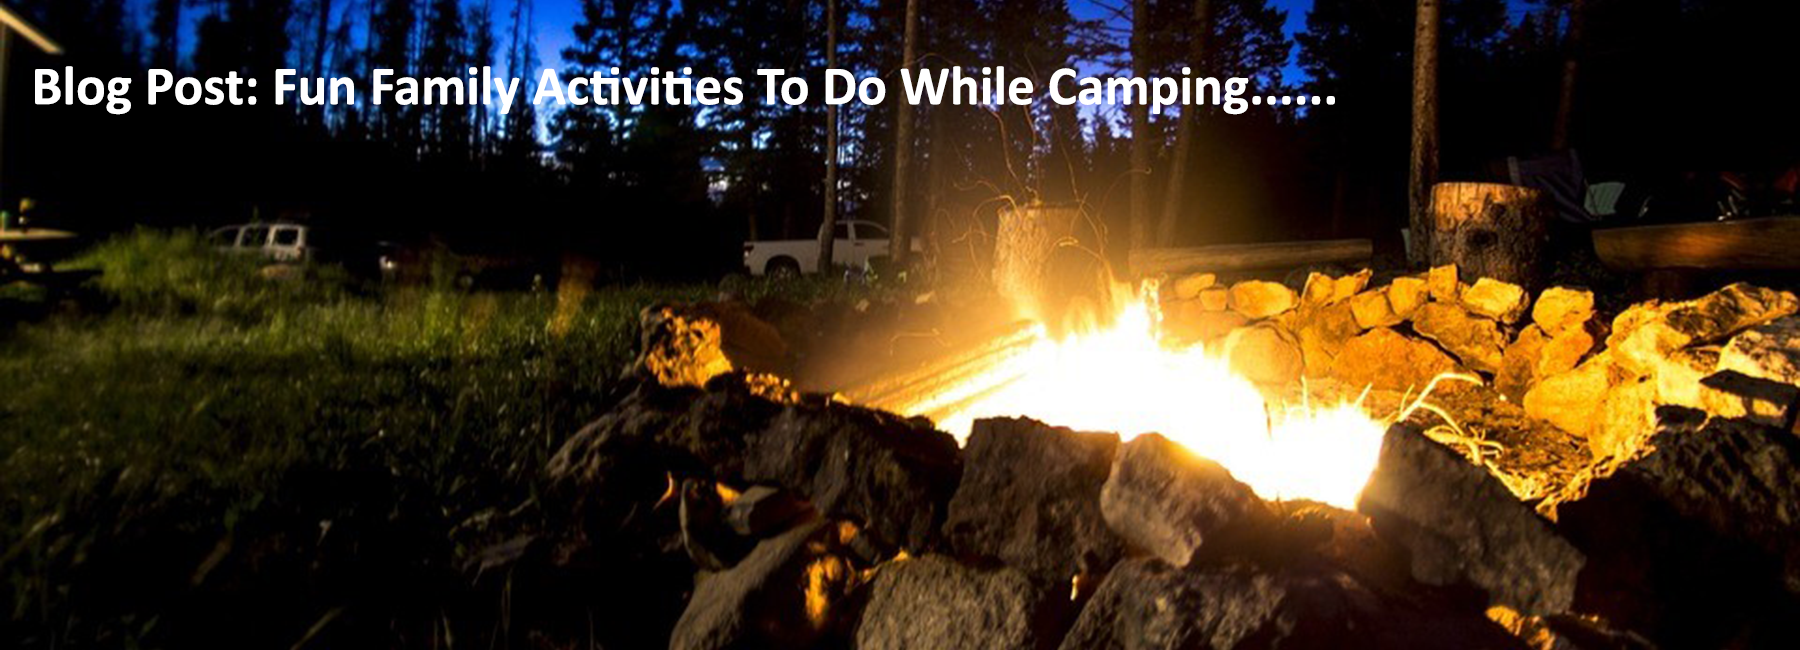 Fun Family Activities To Do While Camping